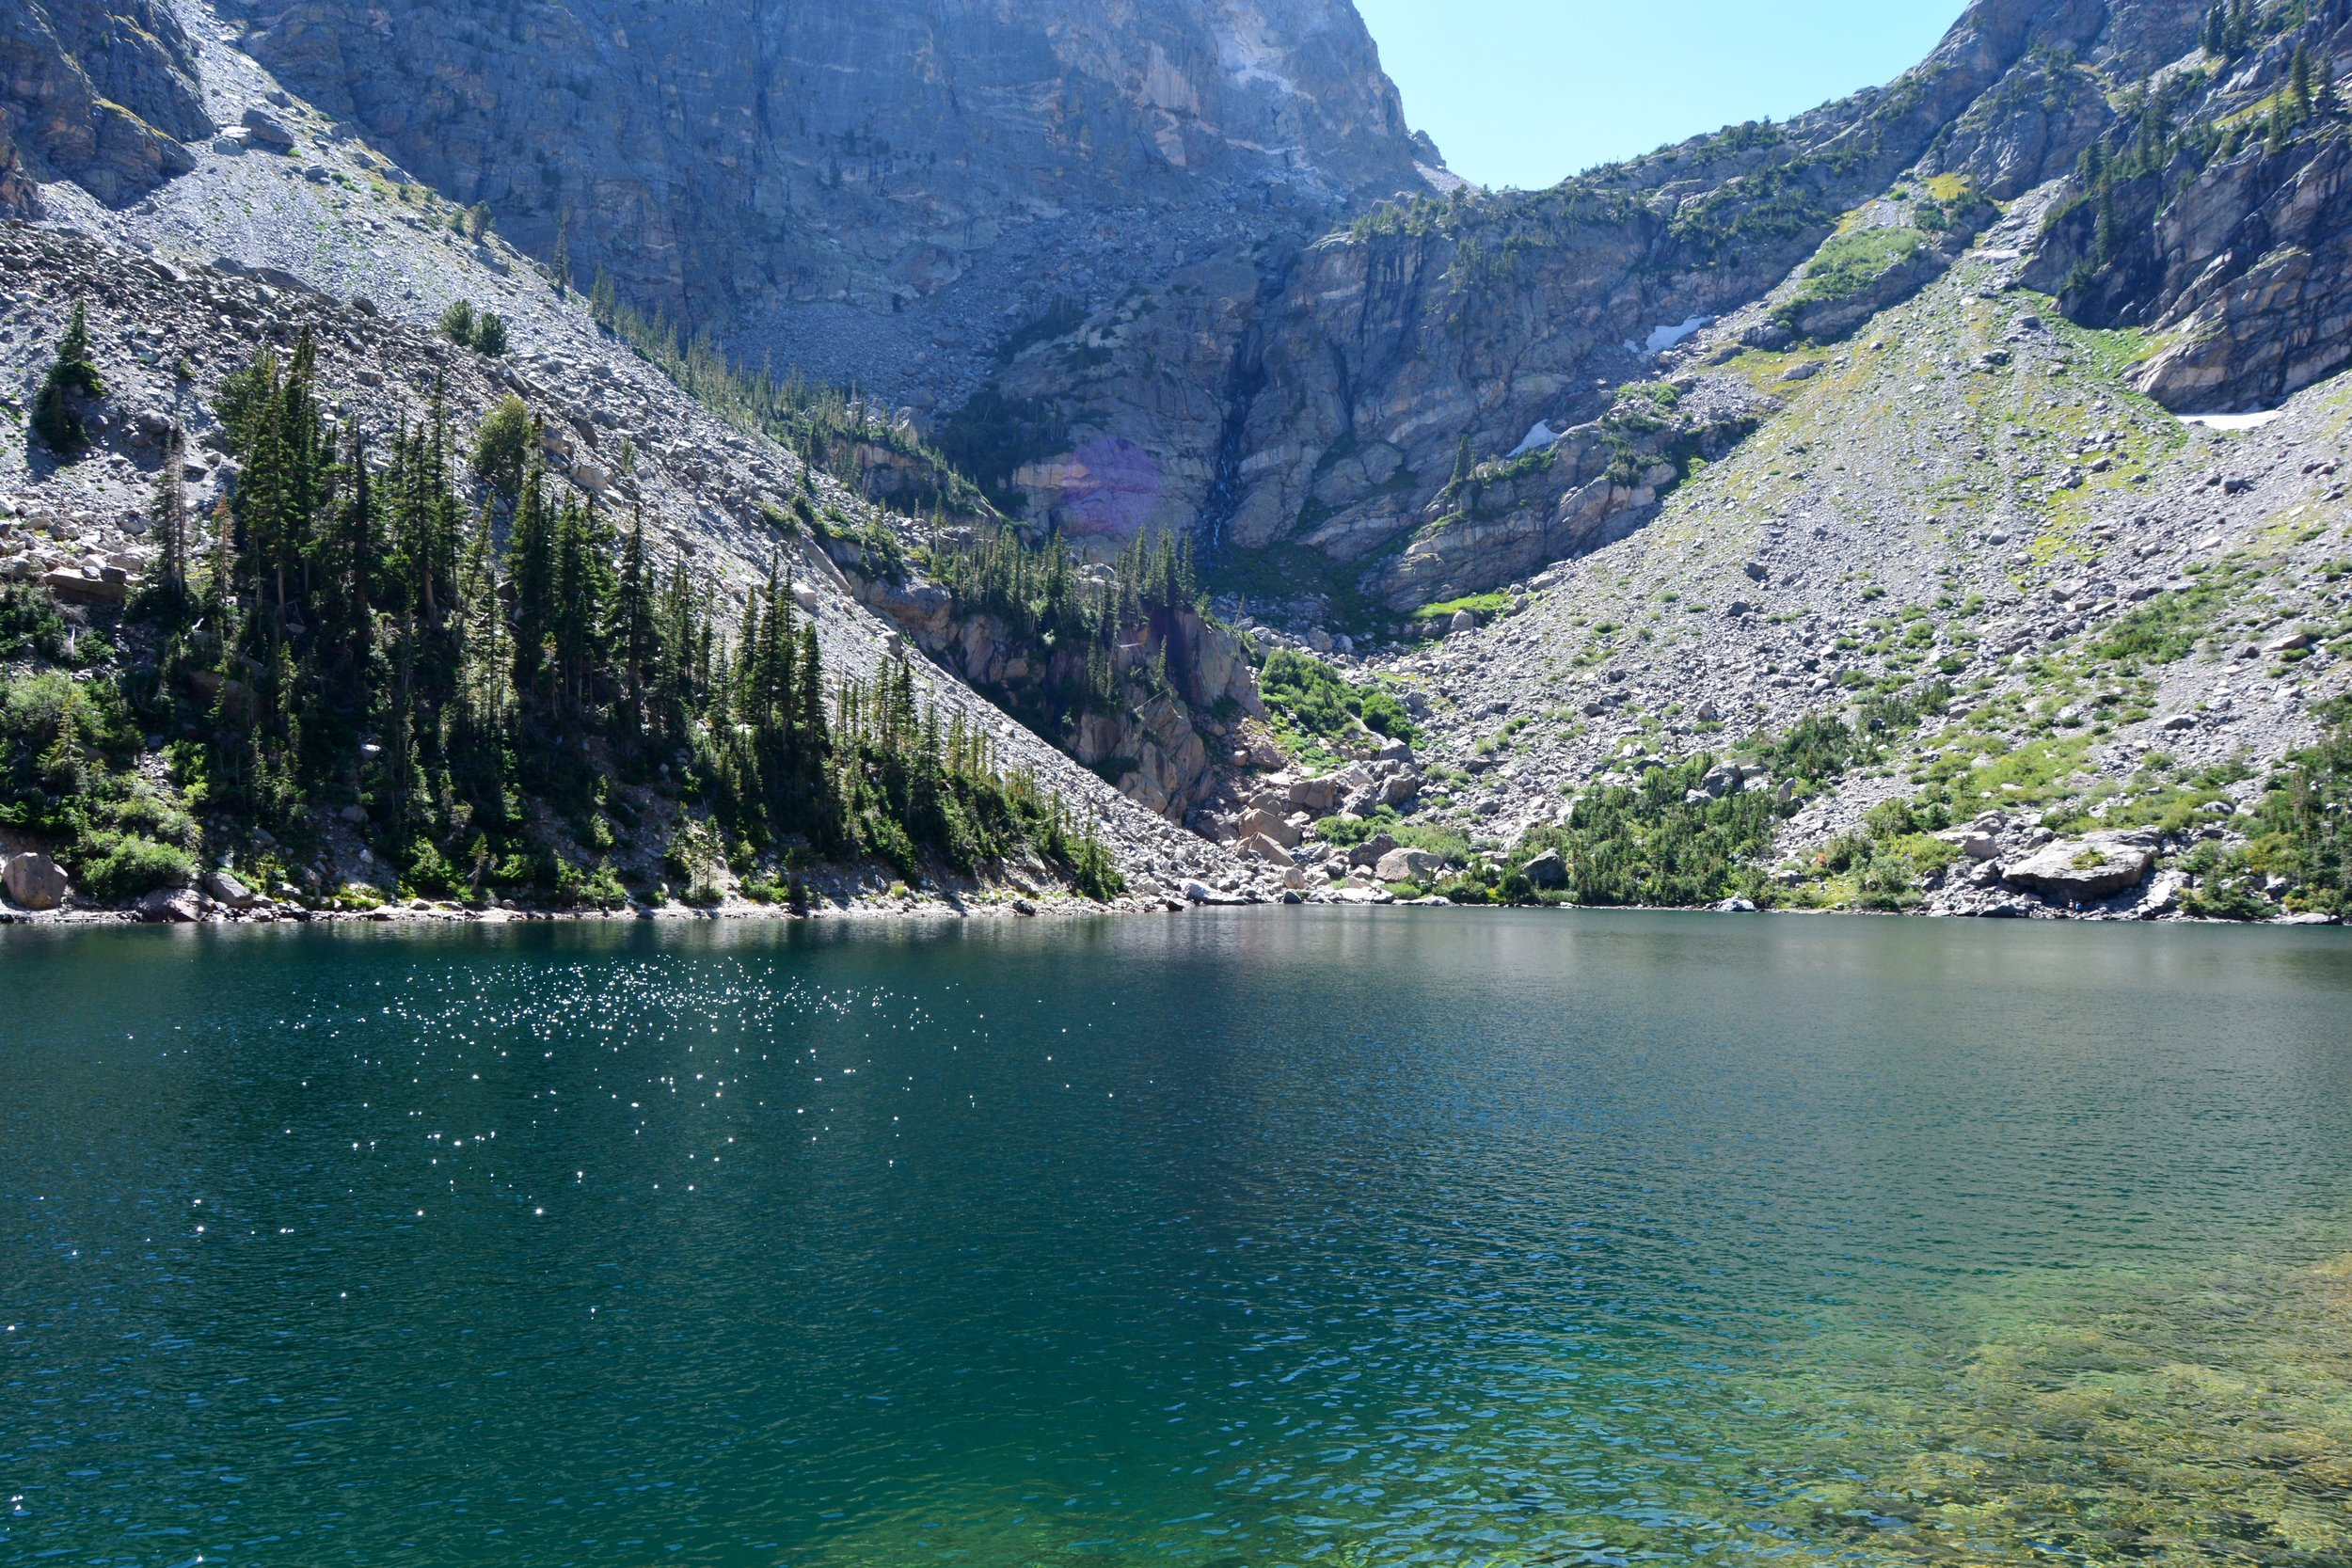 And my favorite, Emerald Lake. The water was such a beautiful deep hue, and it was the perfect place to reflect on how wonderful life is :)